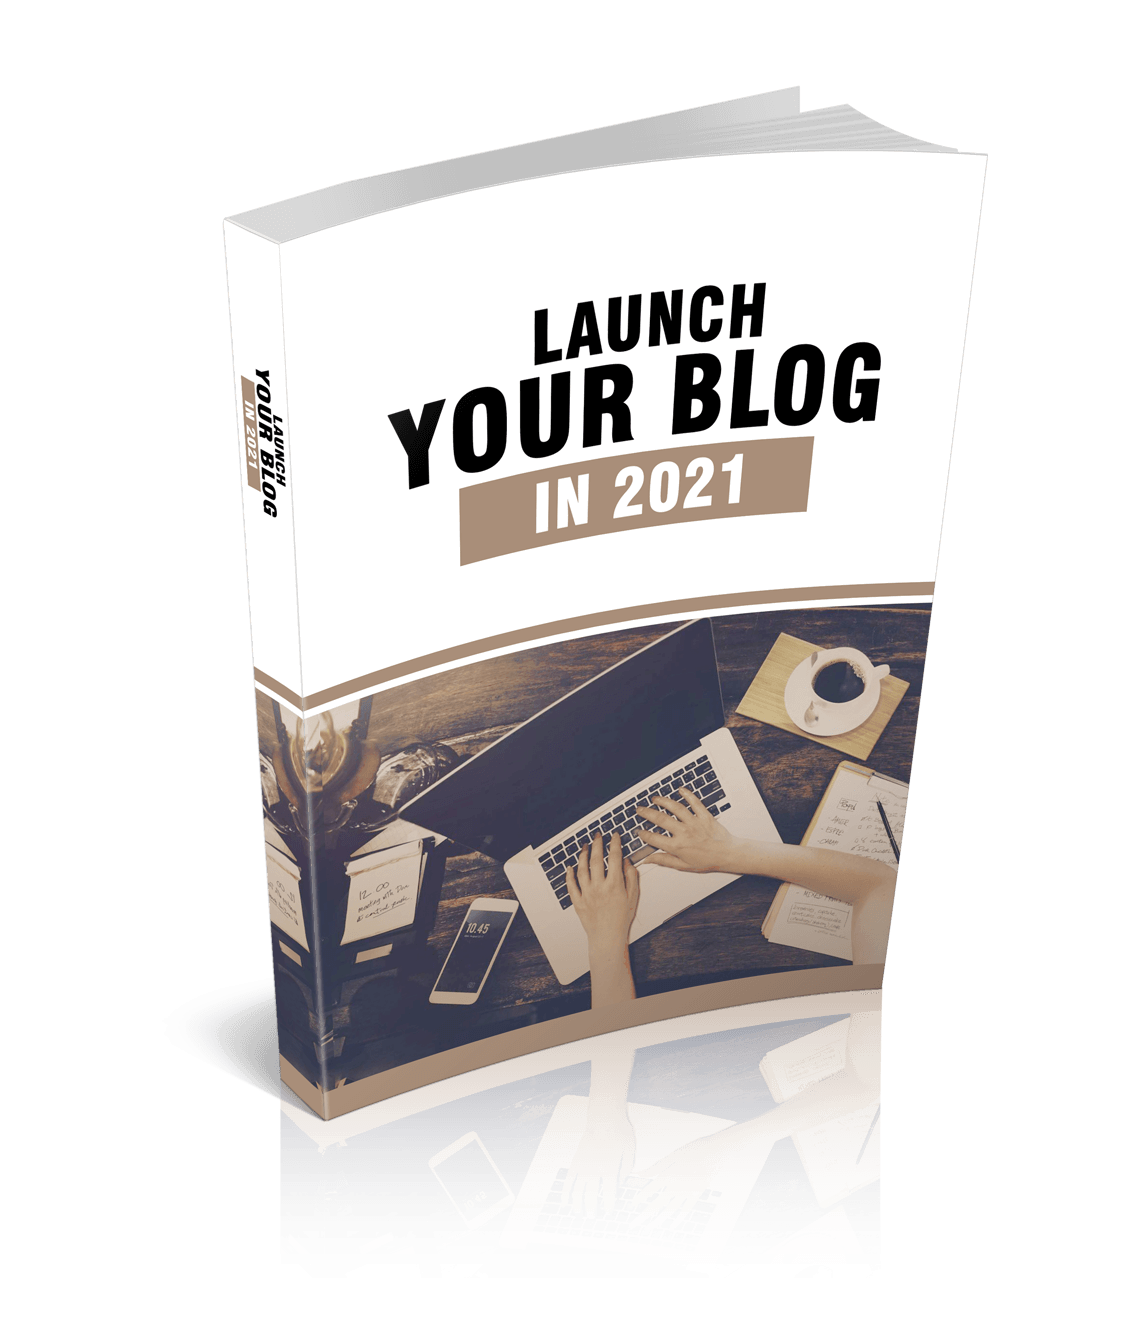 launch your blog in 2021